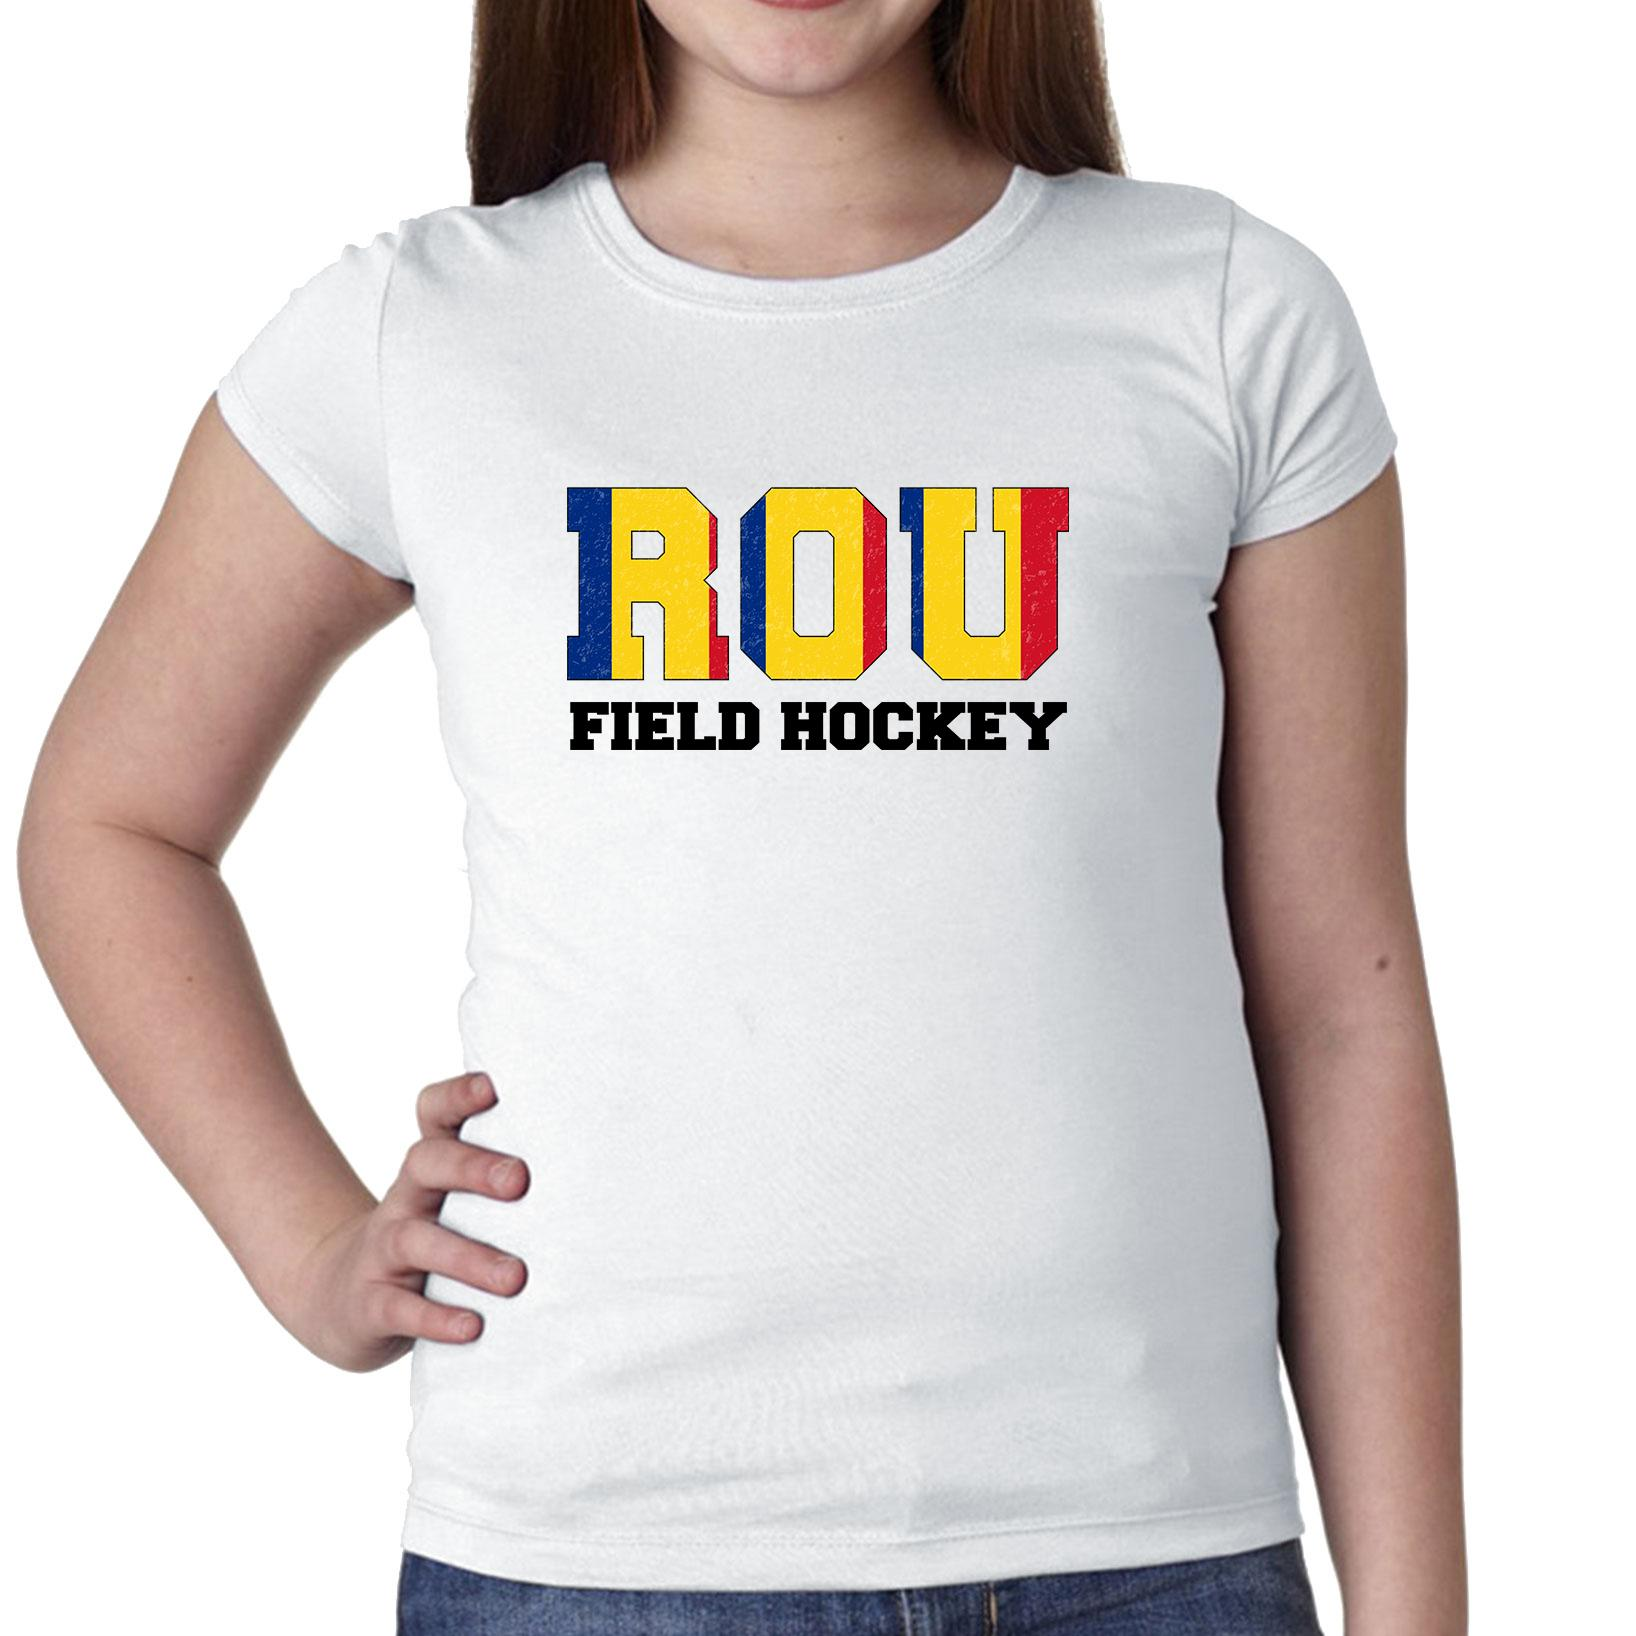 Romania Hockey Olympic Games Rio Flag Girl's Cotton Youth T-Shirt by Hollywood Thread